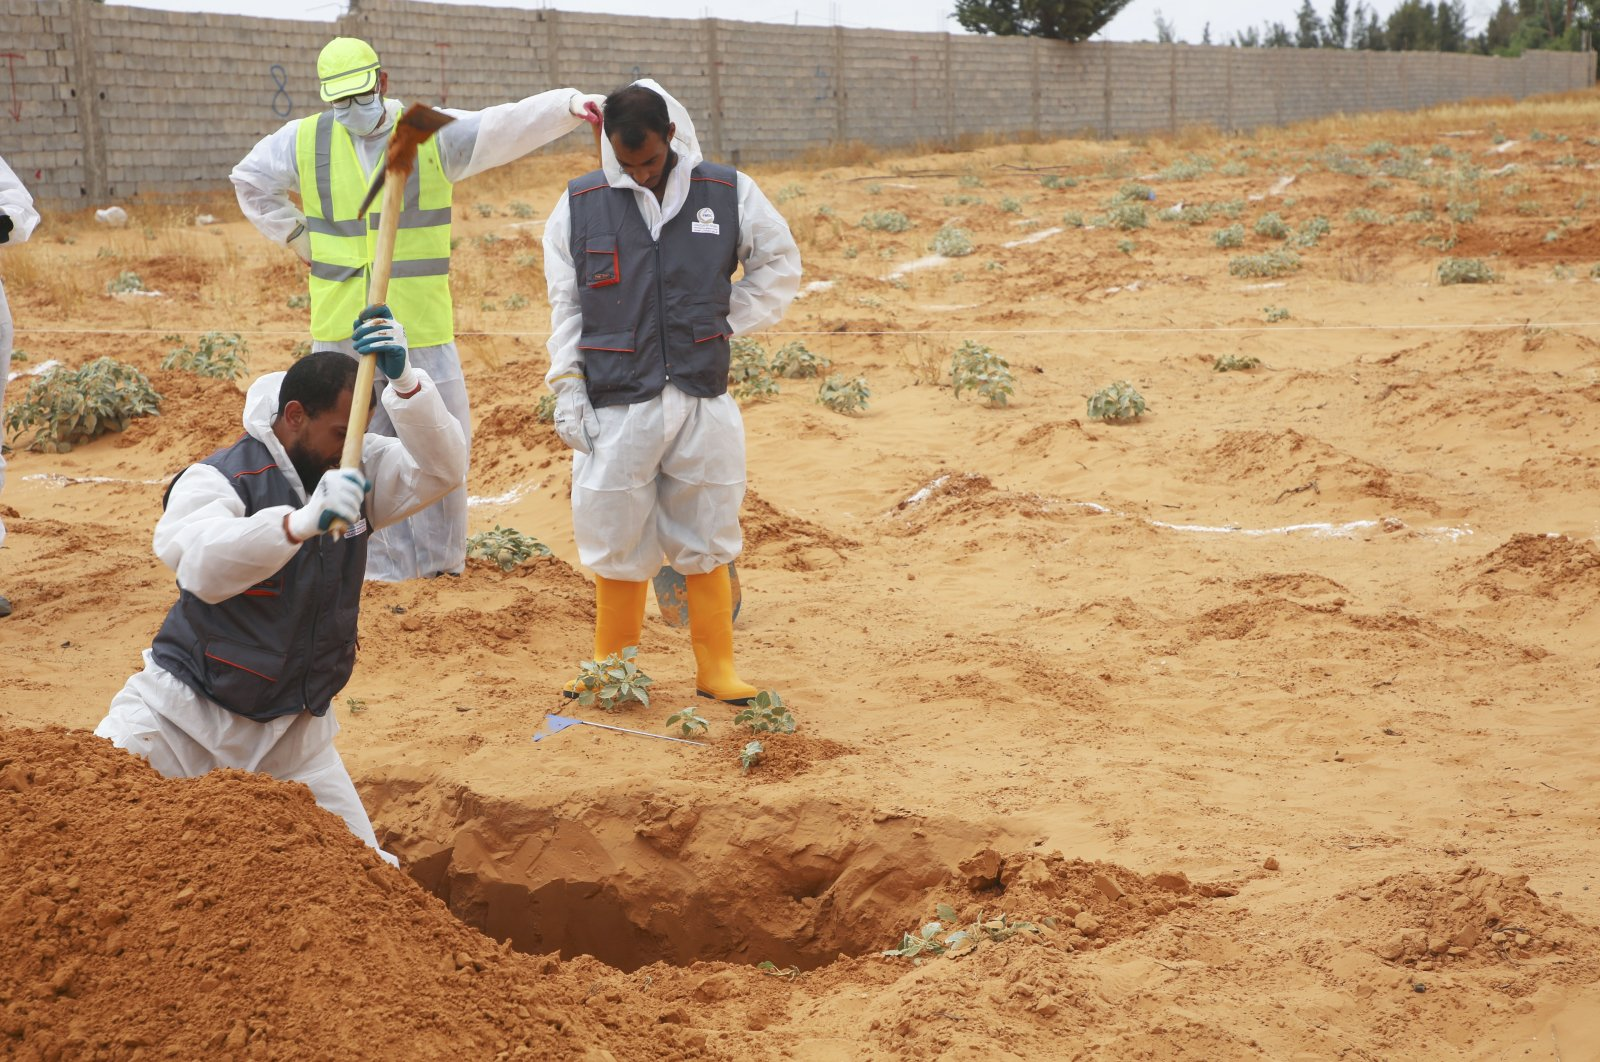 Libyan Ministry of Justice employees dig at the site of a suspected mass grave in the town of Tarhuna, Libya, June 23, 2020. (AP Photo)